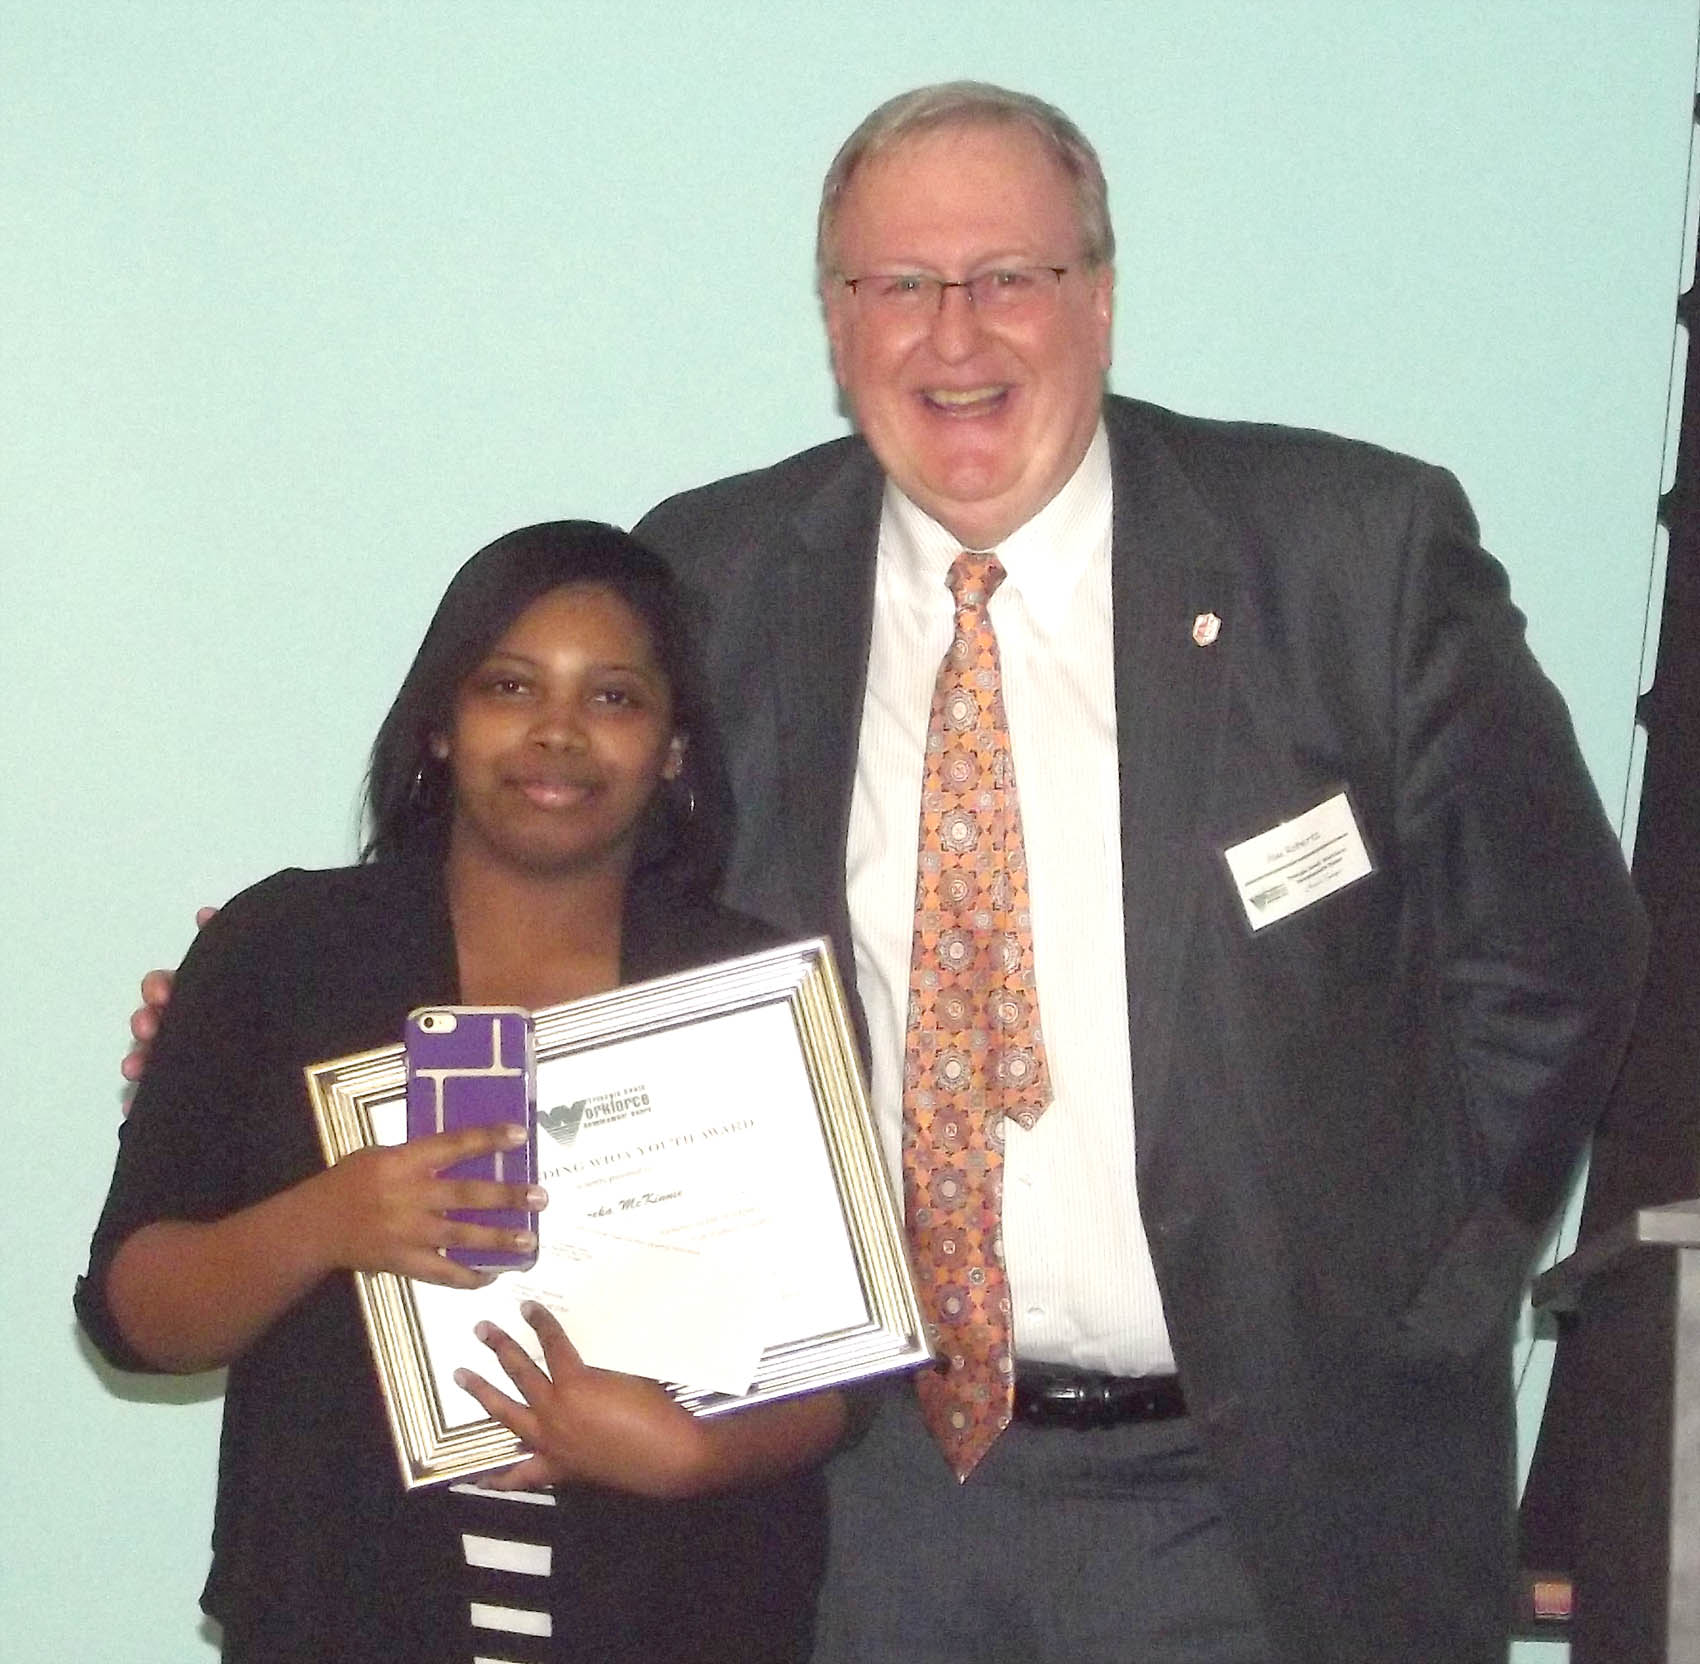 Click to enlarge,  Shareka McKinnie, of Harnett County, received the Outstanding WIOA Out of School Youth Award at the 7th Annual Triangle South Workforce Development Board (TSWDB) Awards Banquet held Wednesday, Dec. 5, at the Central Carolina Community College Harnett Health Sciences Center in Lillington. Presenting the award was Jim Roberts, TSWDB Member.